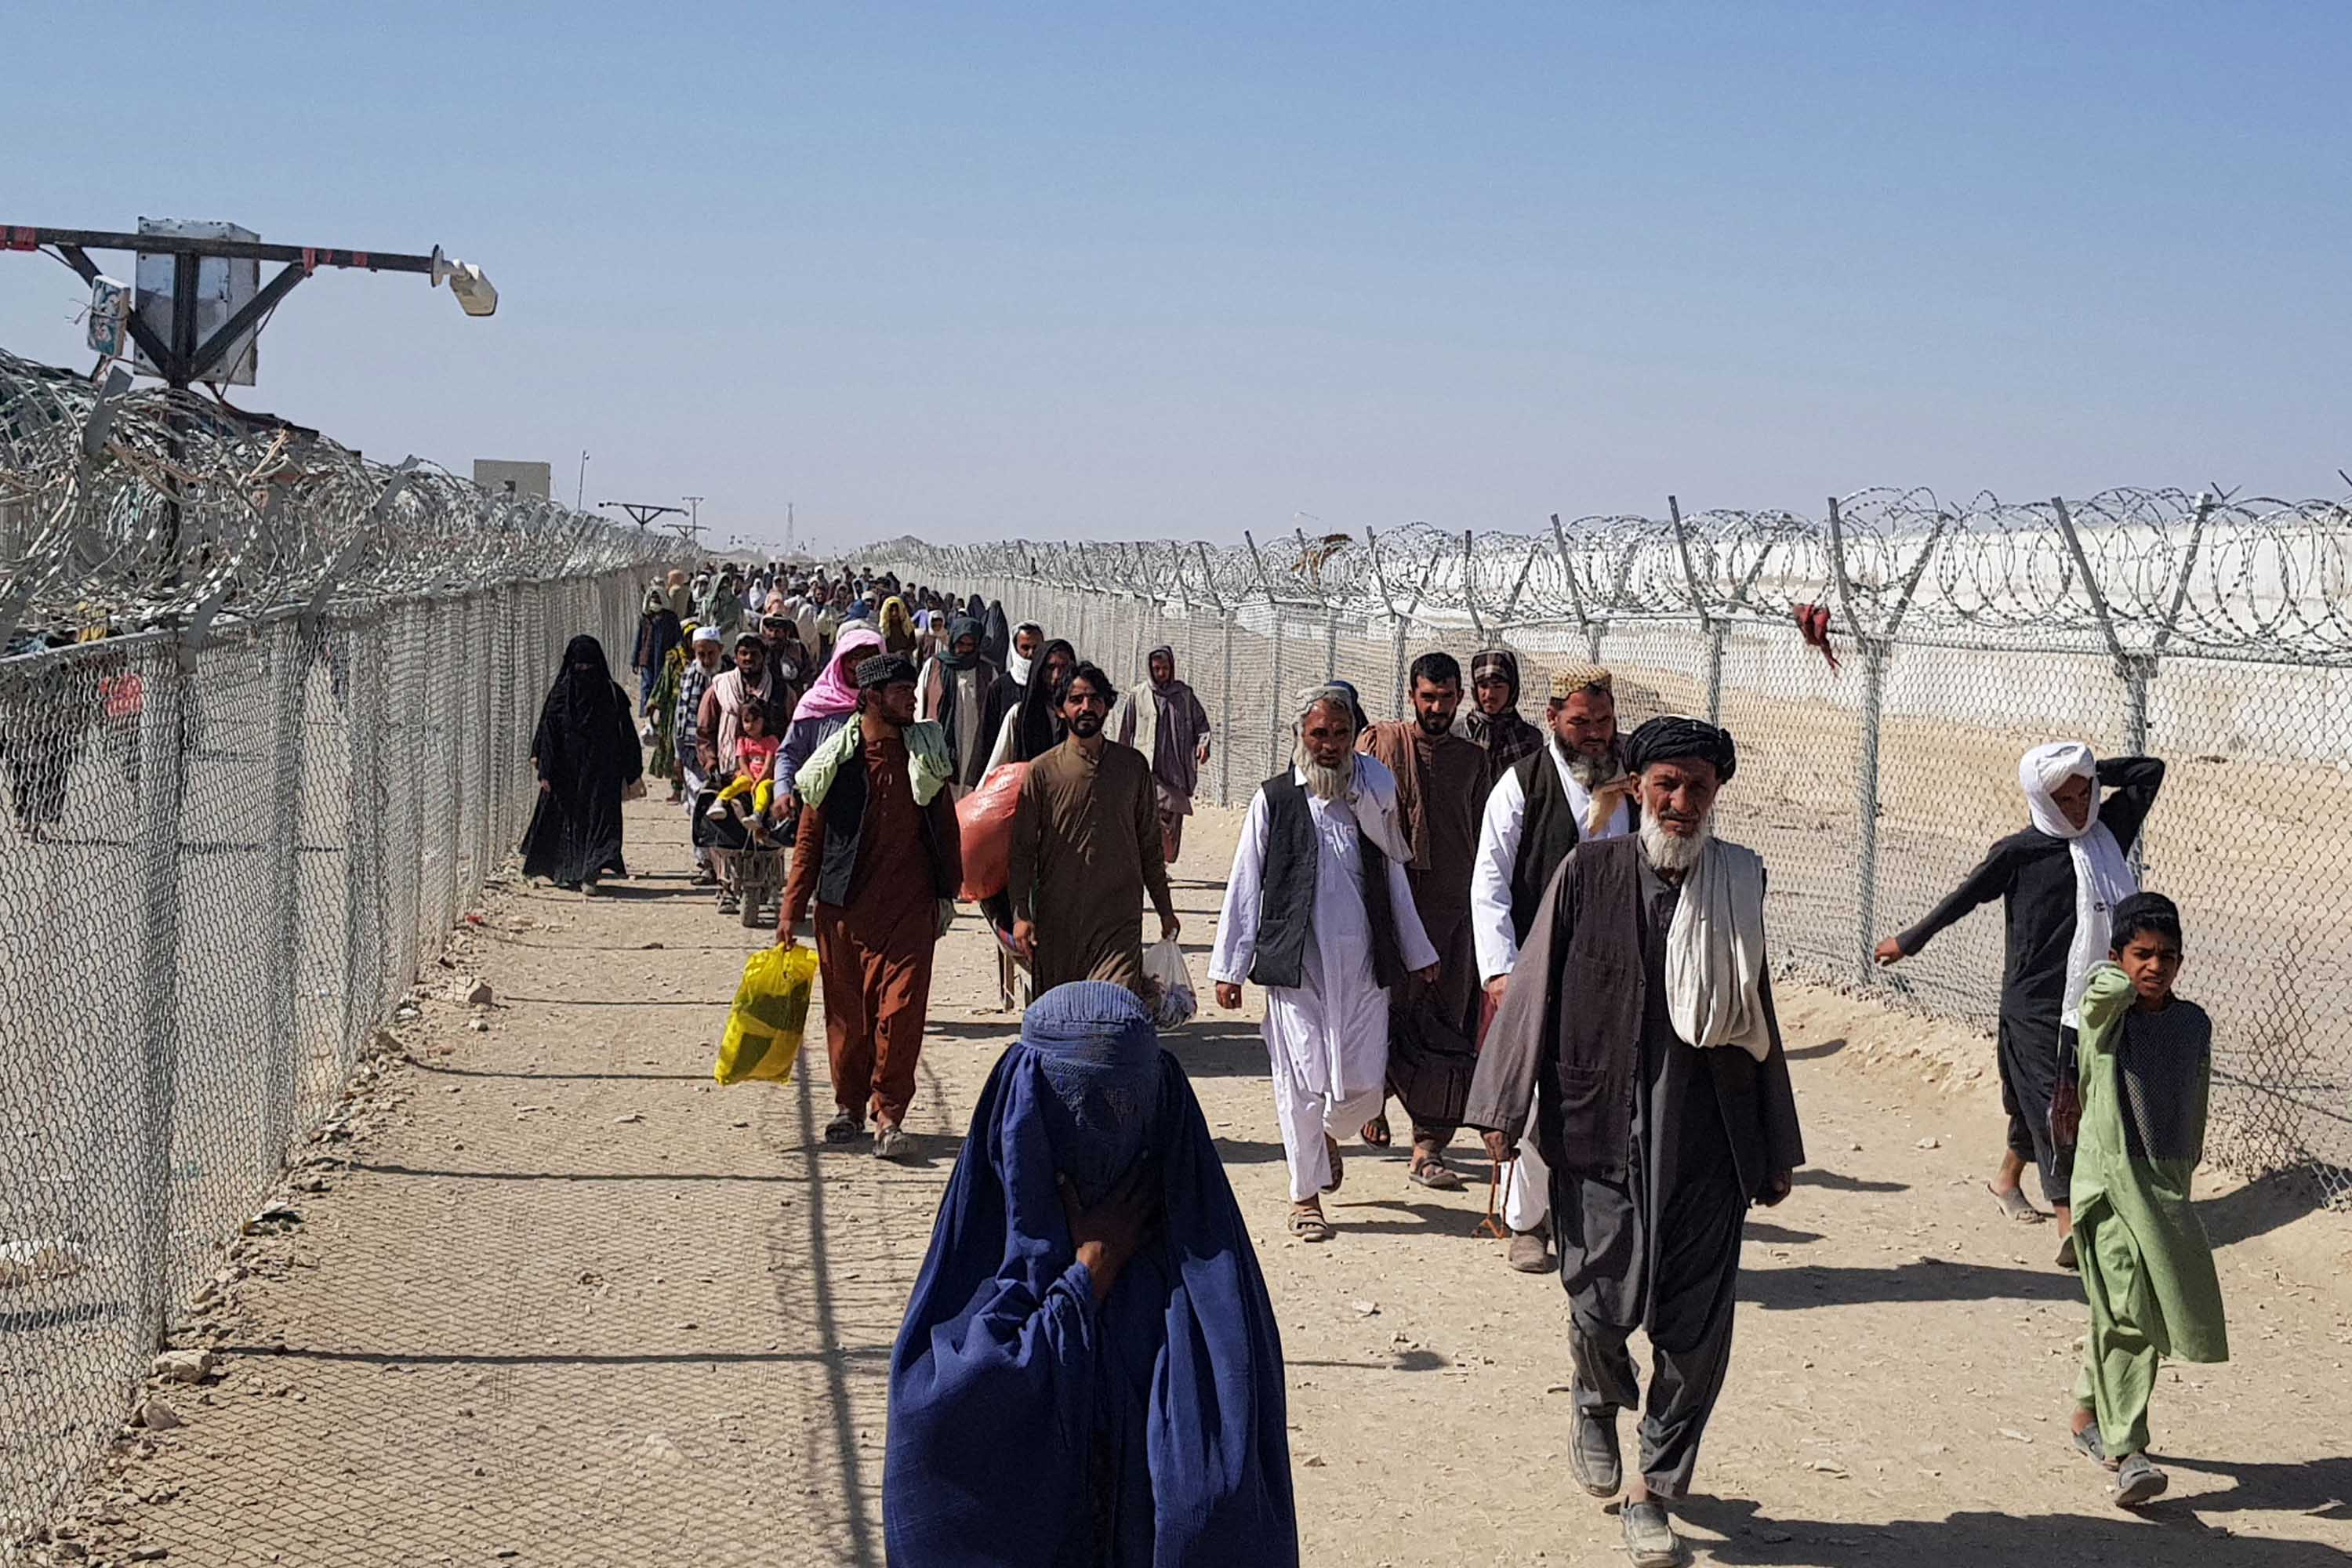 Afghan nationals cross the border into Chaman, Pakistan on August 18, 2021.